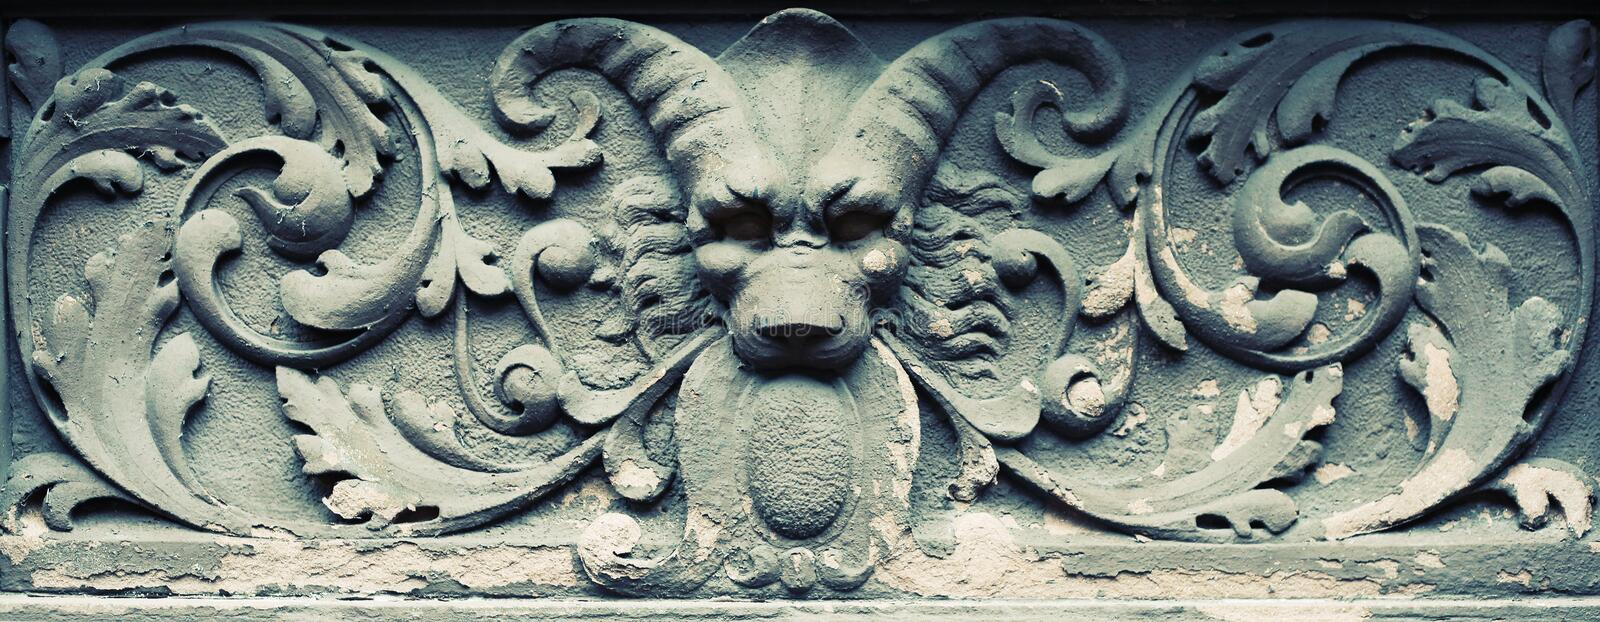 Download Carved devil in stone stock image. Image of creatures - 27690407